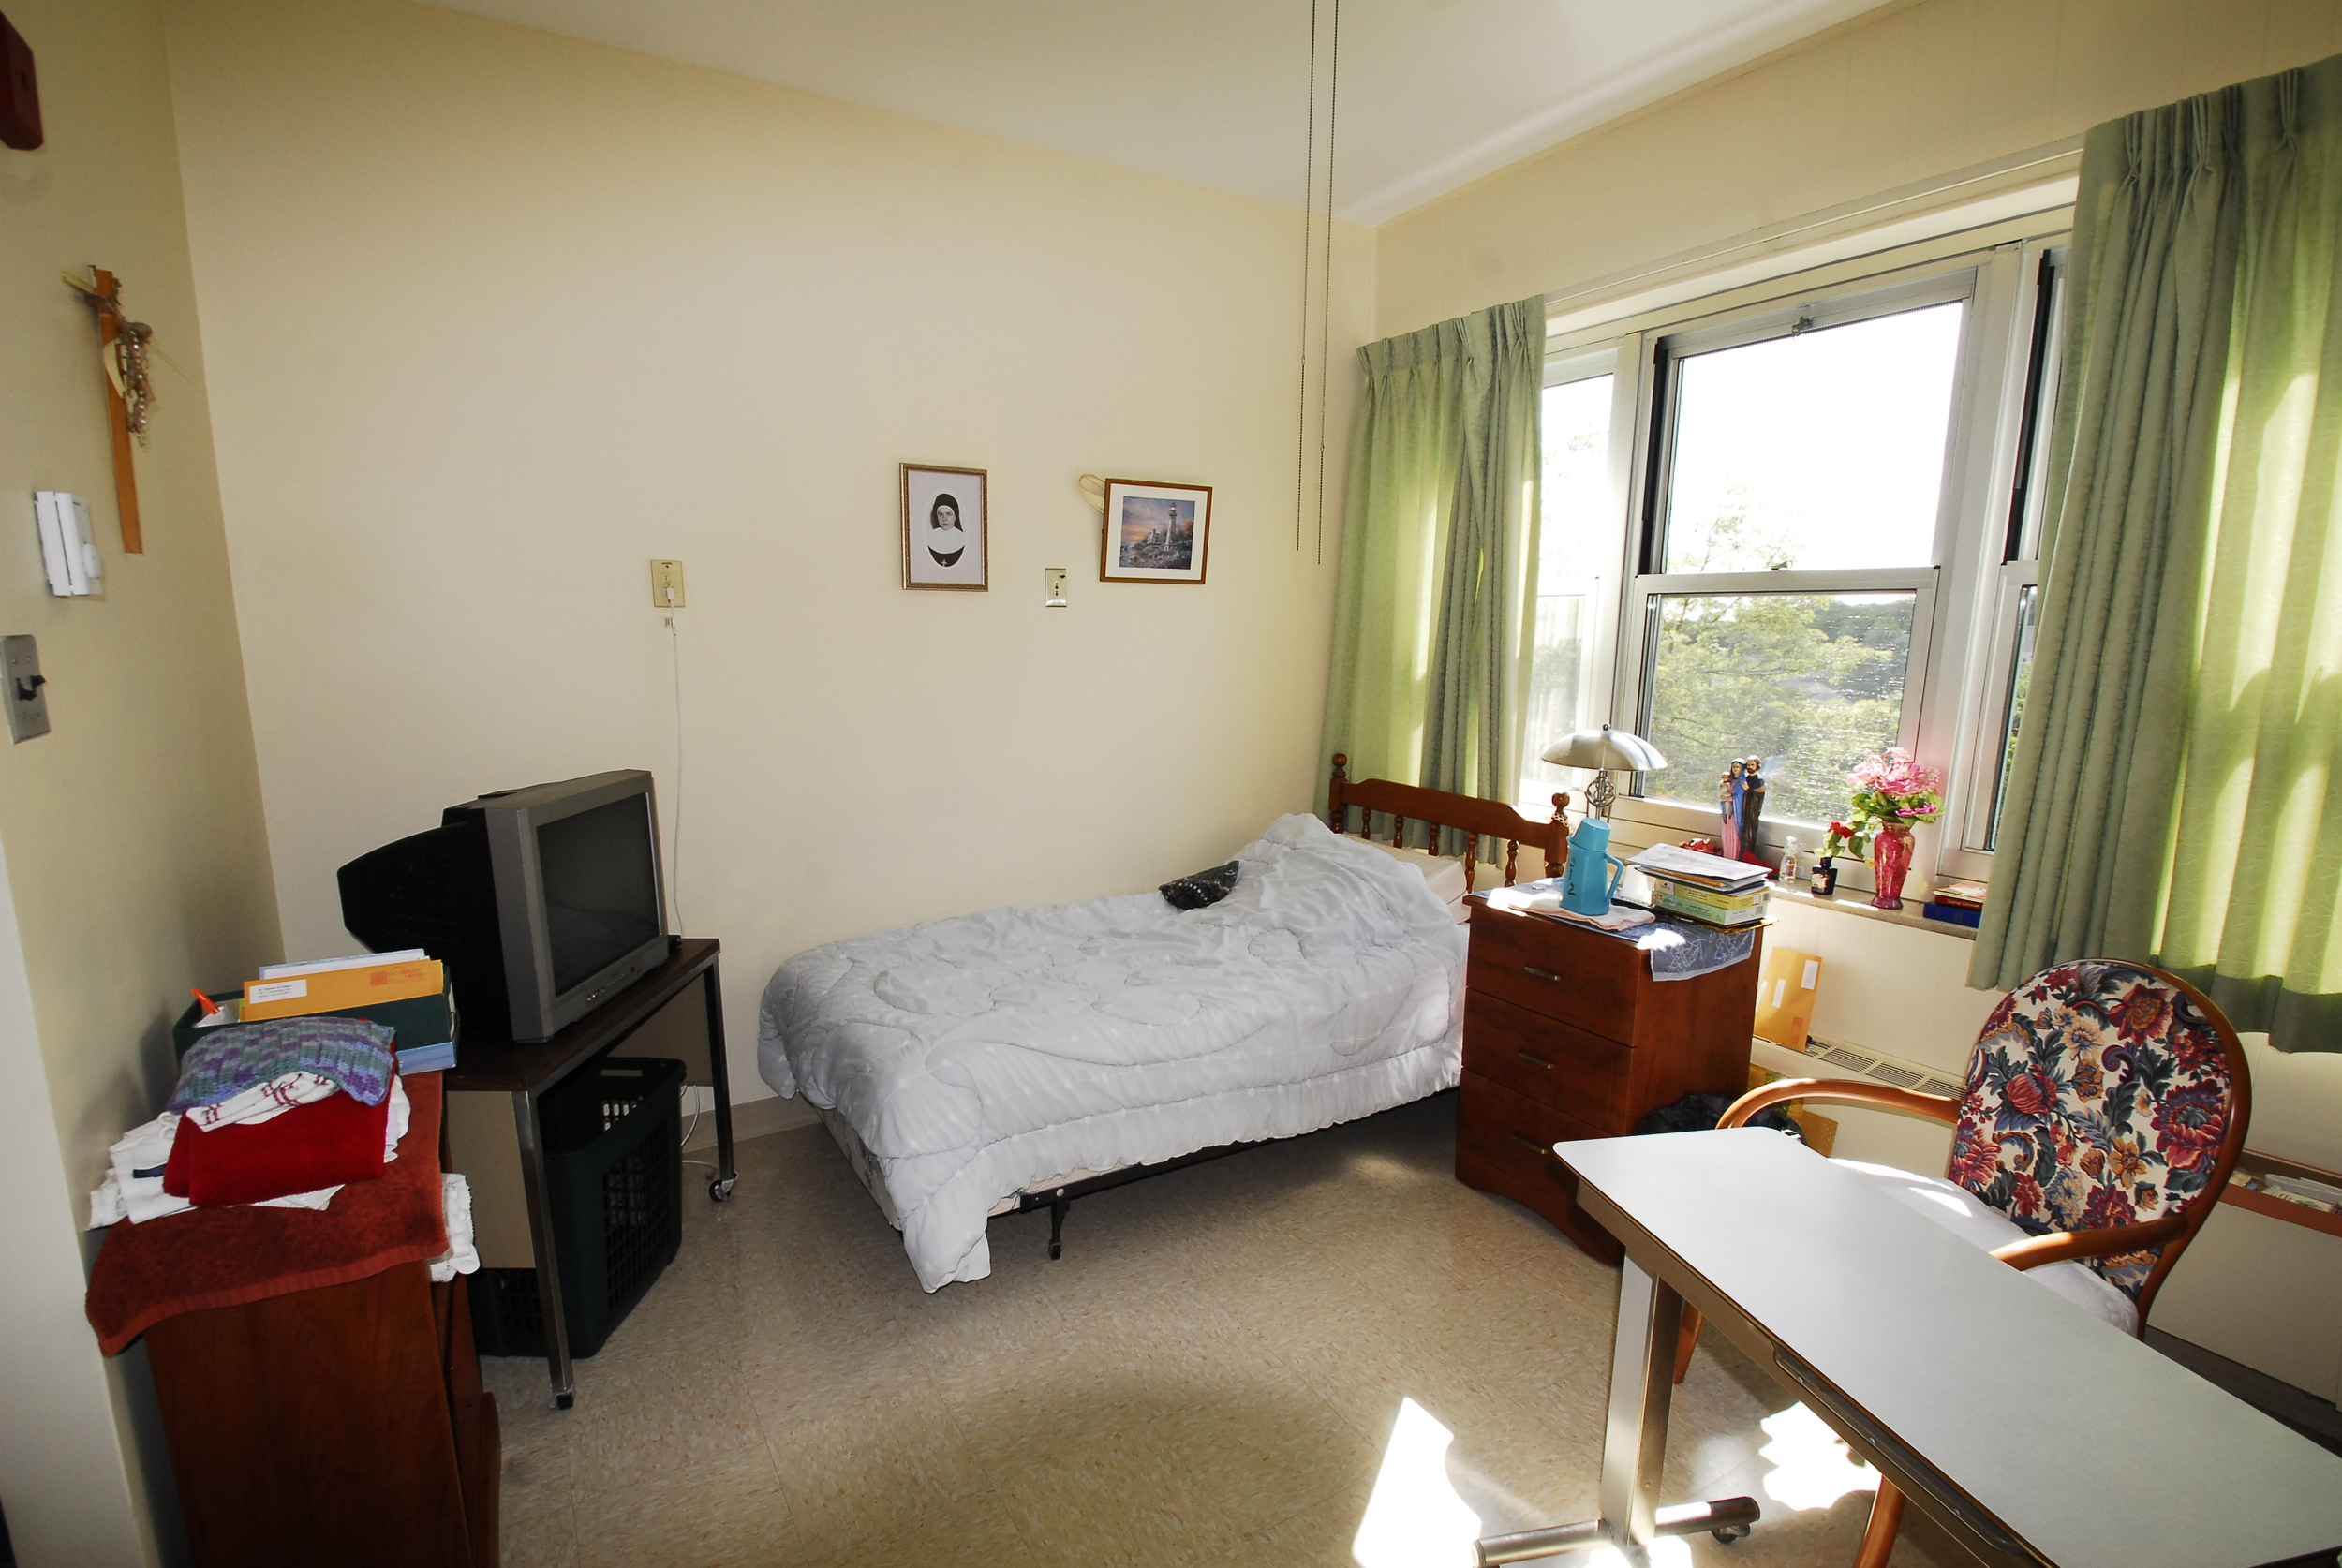 EXISTING CONDITIONS: Typical Resident Room